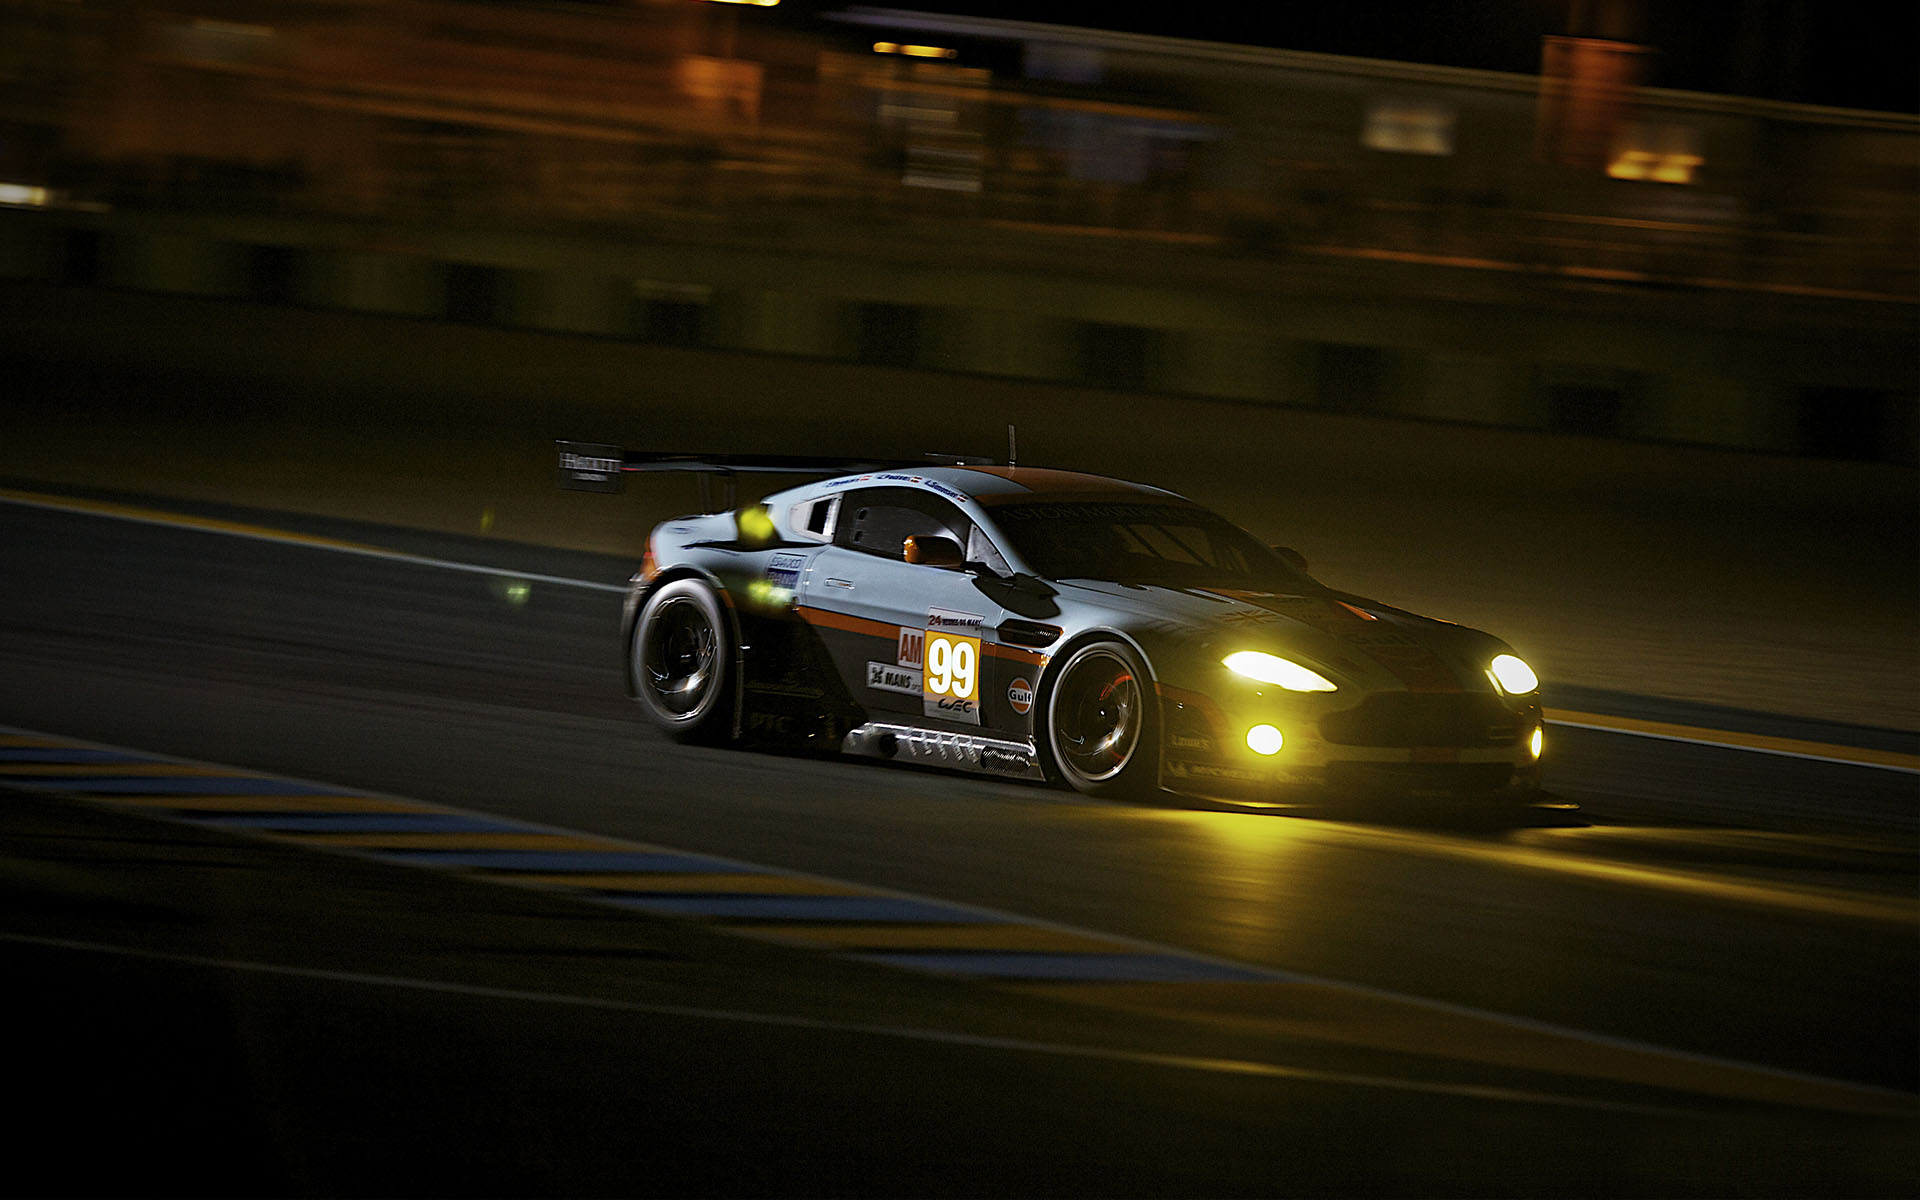 Great Wallpaper Night Car - aston_martin_vantage_night_race-wide  Best Photo Reference.jpg